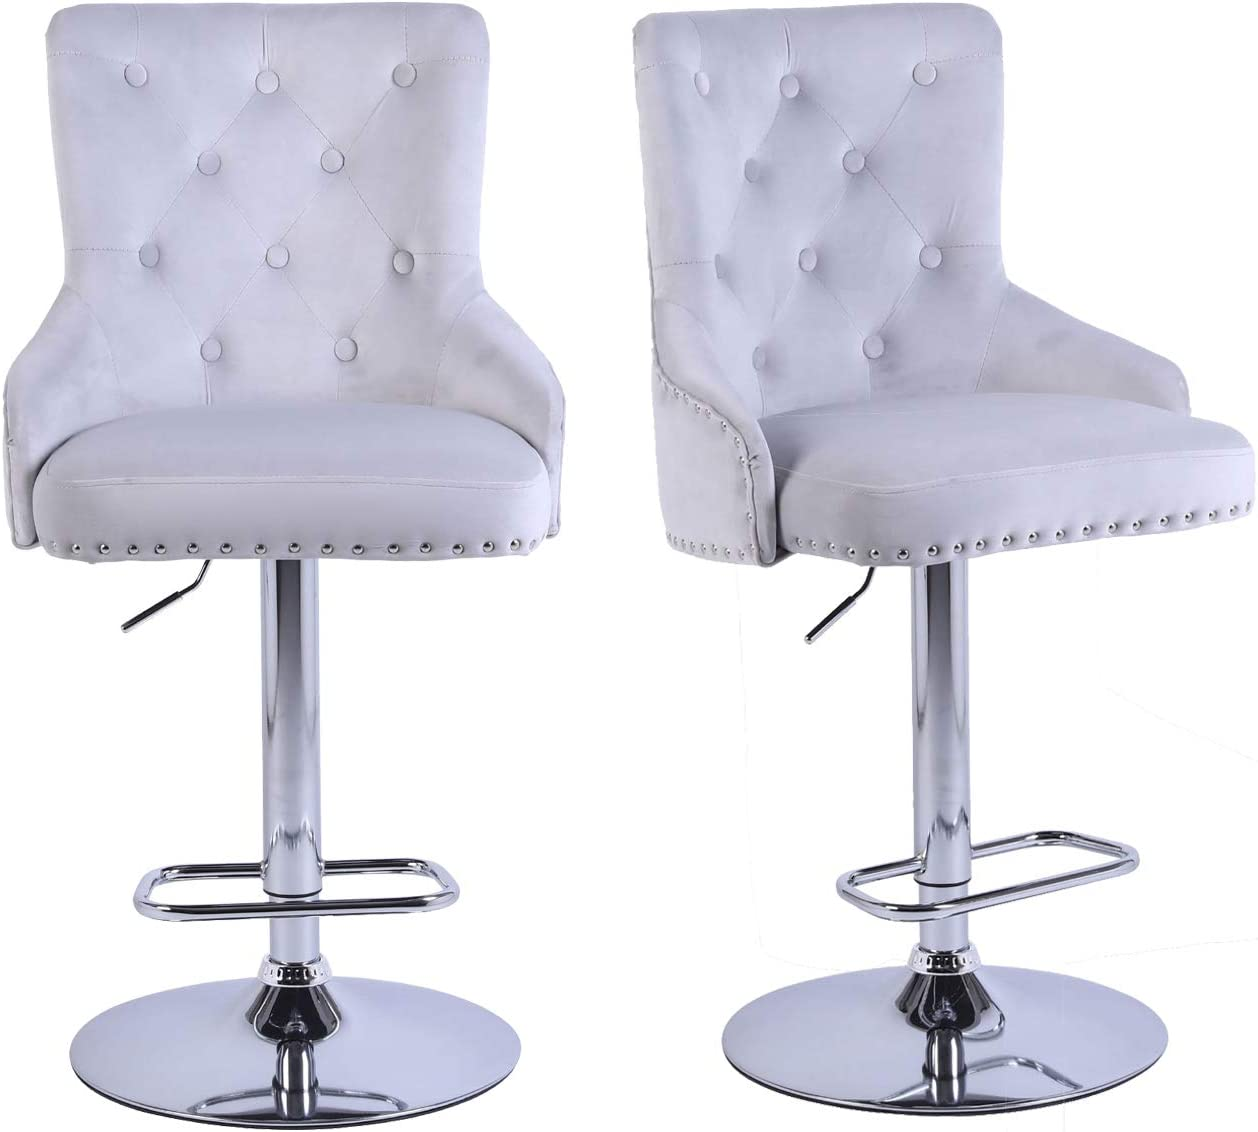 Bar Stools Set of 2 Counter Height Adjustable Swivel Bar Stool